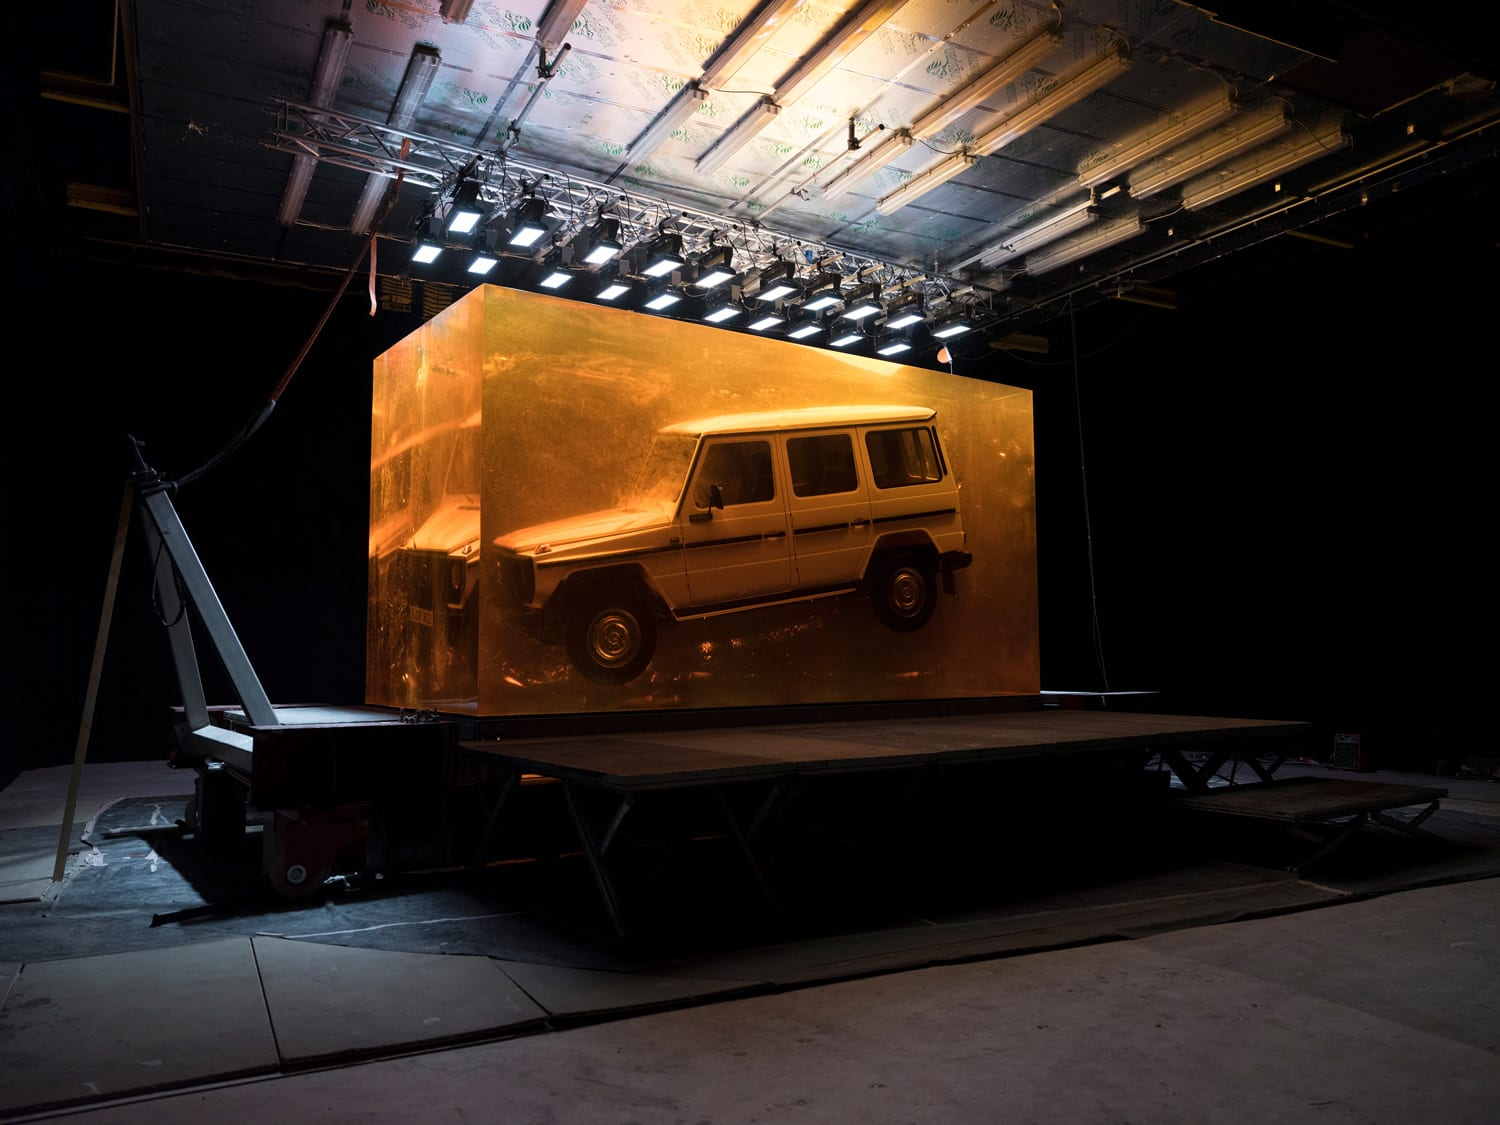 1979 G-Class Mercedes Cast in 40,000 Kilograms of Resin | Yellowtrace